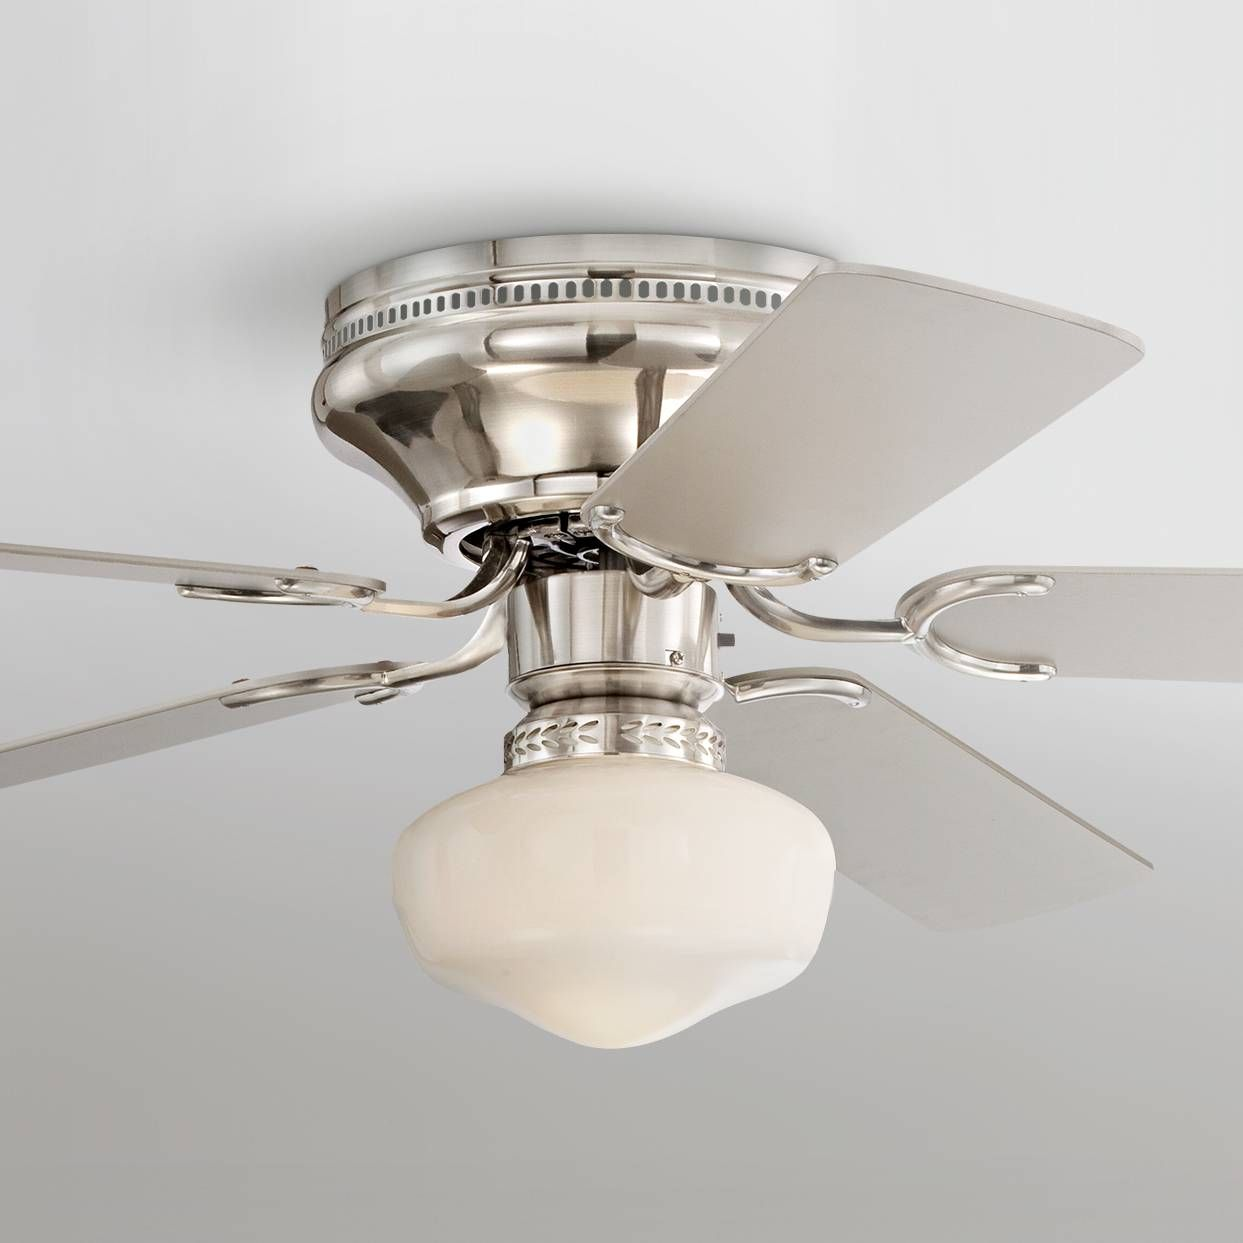 52 casa vieja hillhurst hugger ceiling fan 4f860 lamps plus silver finish blades and a brushed nickel finish motor give this hugger style ceiling fan a sleek polished look five silver finish blades mozeypictures Image collections